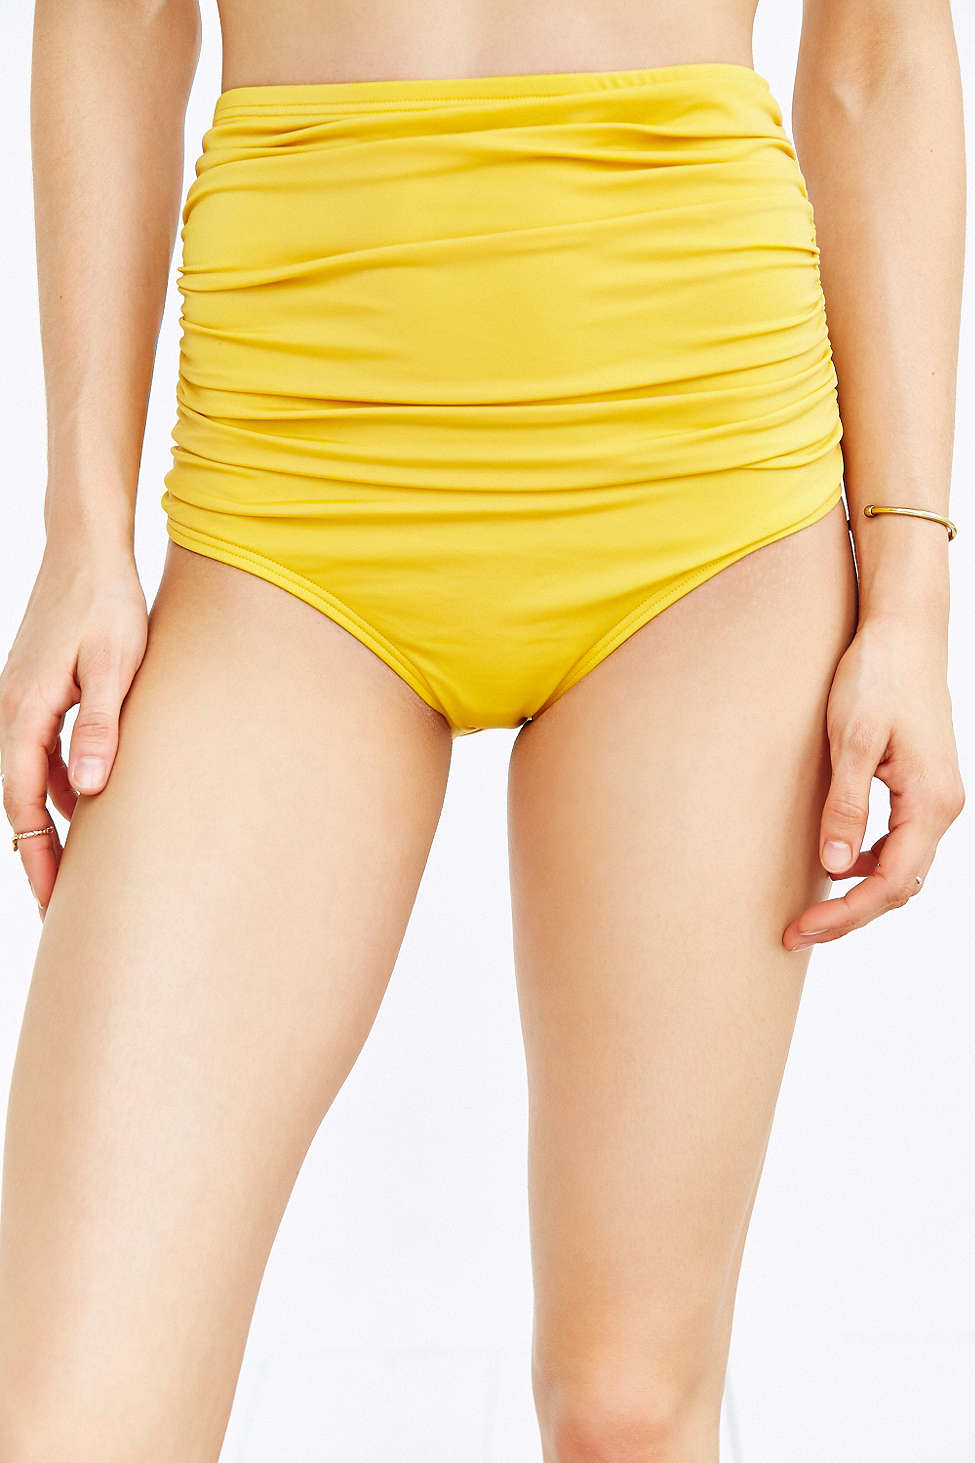 ef207760b41 Gallery. Previously sold at: Urban Outfitters · Women's High Waisted Bikini  Bottoms